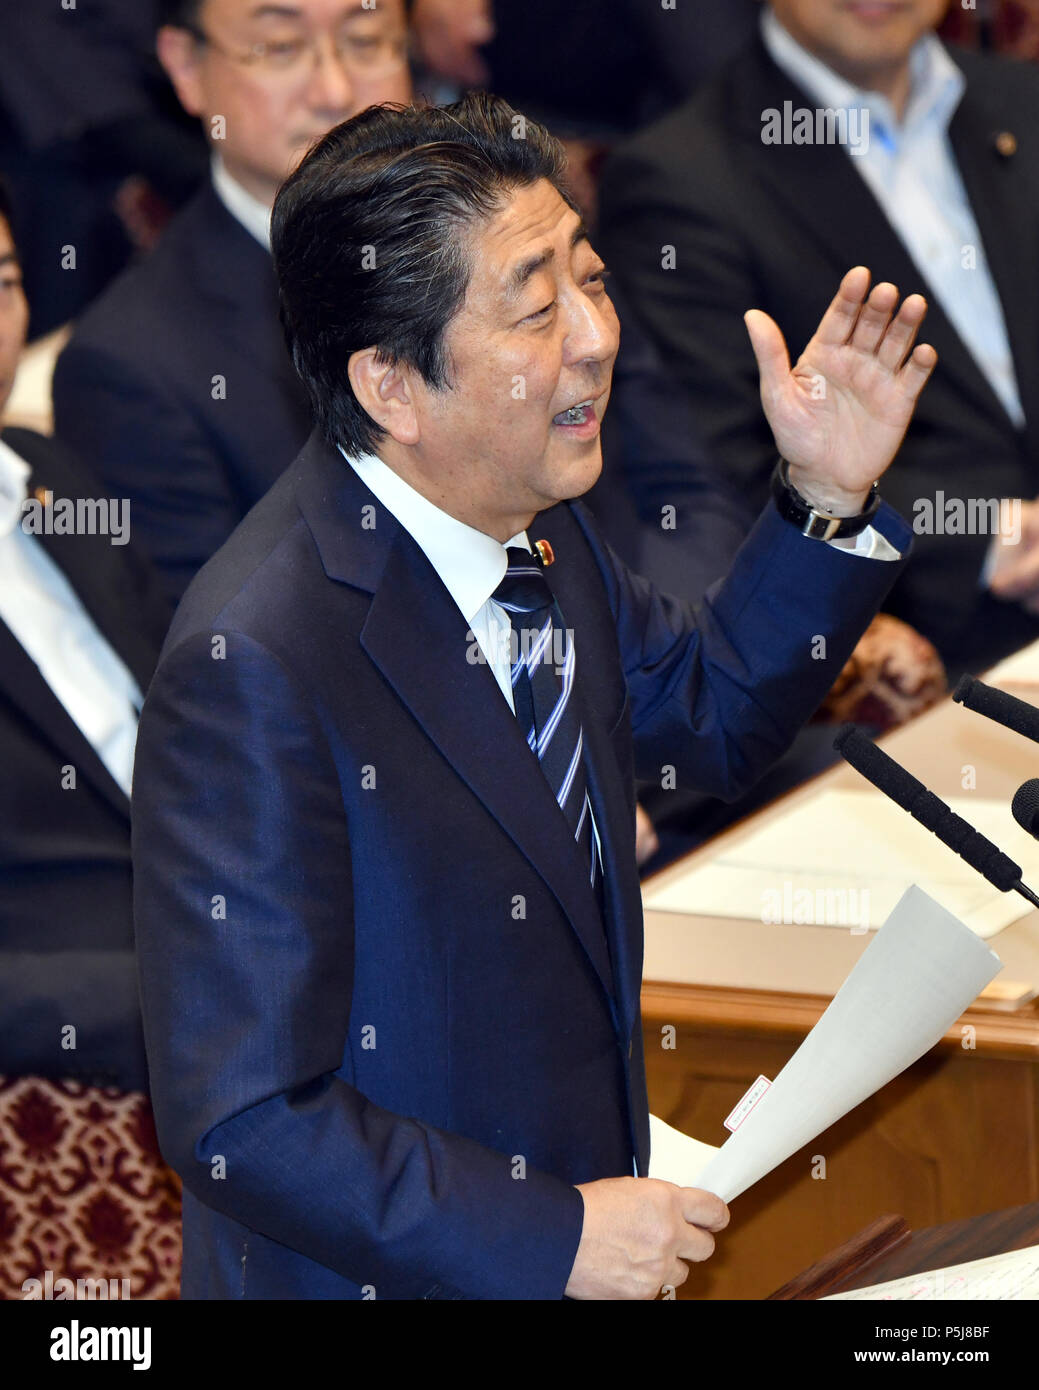 Tokyo, Japan. 27th June, 2018. Japan Prime Minister Shinzo Abe answers Kazuo Shii, leader of the Japanese Communist Party, during a Diet question time of the Joint Review Board of the Committee on Fundamental National Policies in Tokyo on Wednesday, June 27, 2018. Credit: Natsuki Sakai/AFLO/Alamy Live News - Stock Image